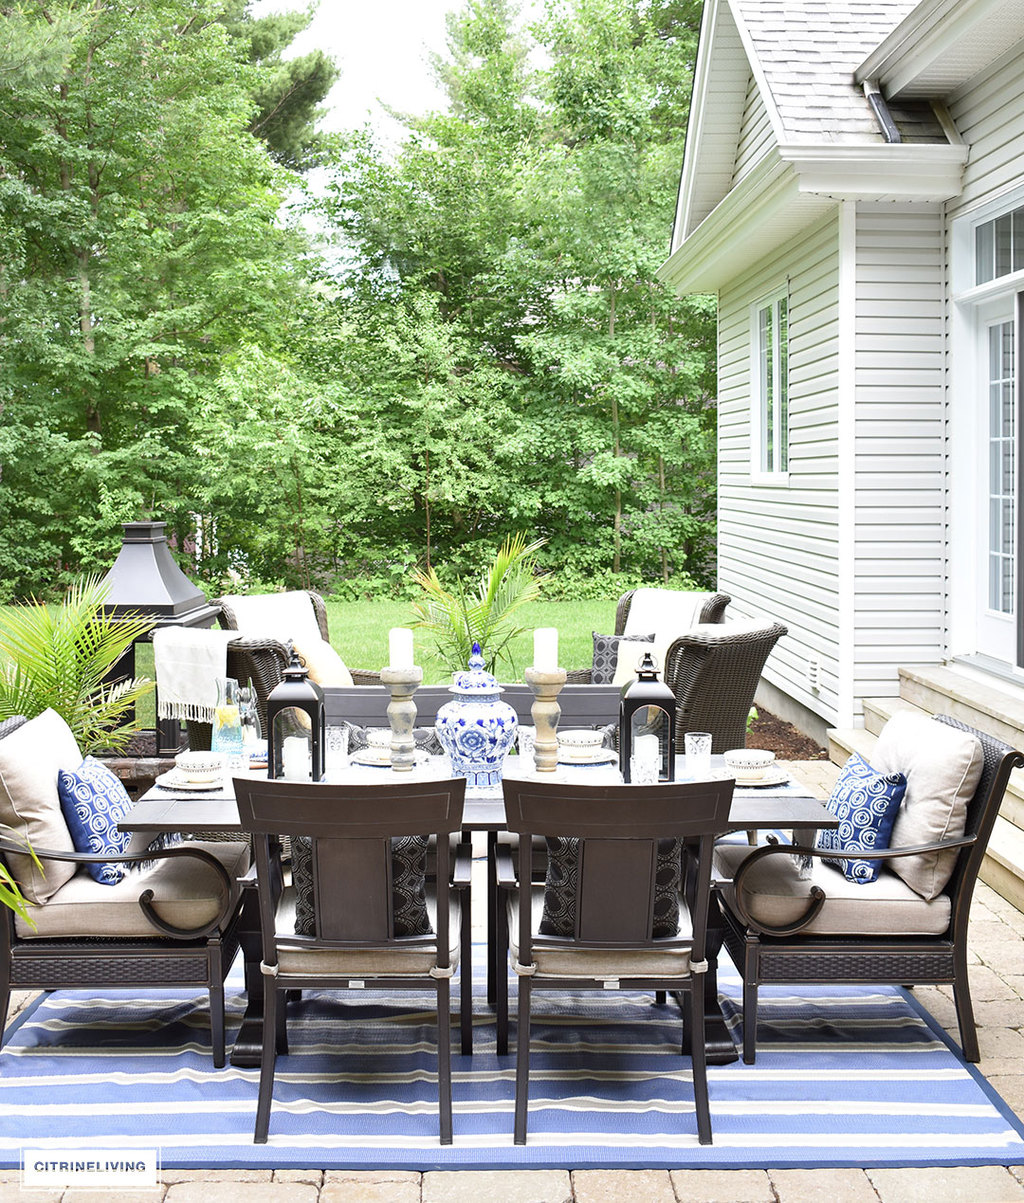 Backyard patio with dining and conversation areas - blue and white striped outdoor rugs and accents bring an indoor look outdoors.